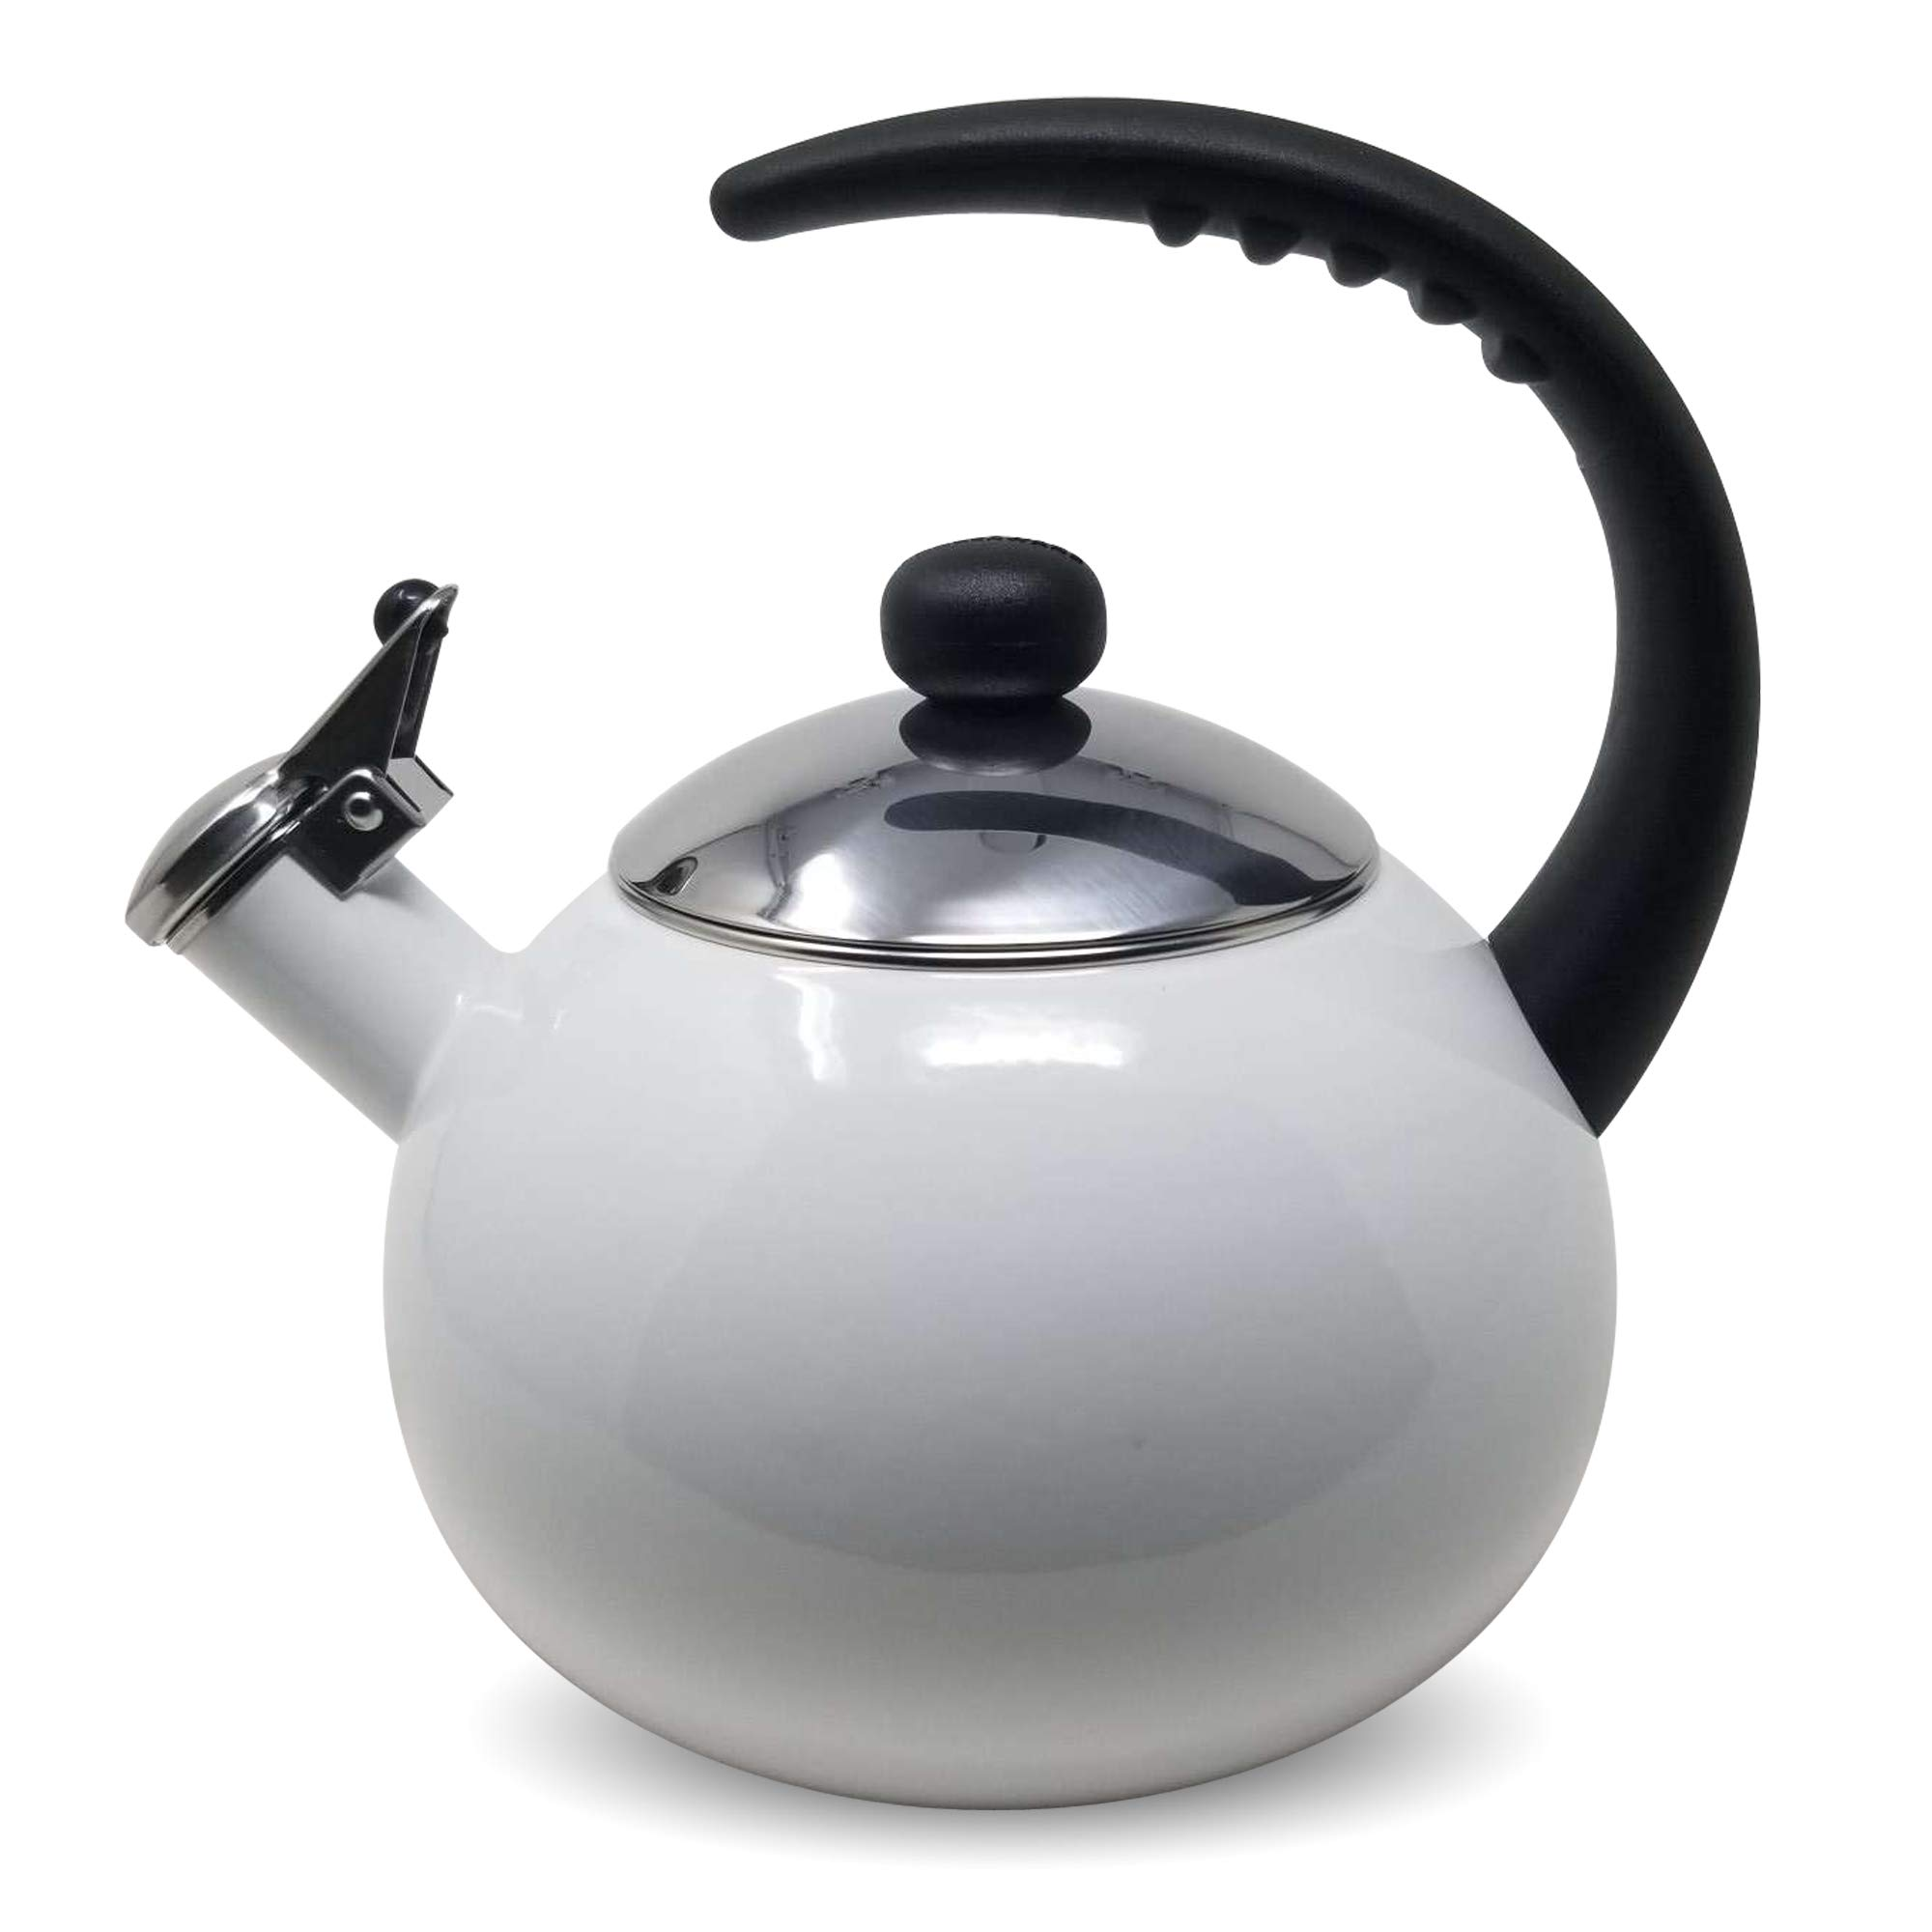 Farberware Luna White Porcelain Enameled Food Grade 18/8 Stainless Steel Soft Whistle Anti- Hot and Anti-Rust TEA KETTLE with Soft Grip Handle Flip Up Spout Heavy Gauge STOVETOP POT 2 QT.